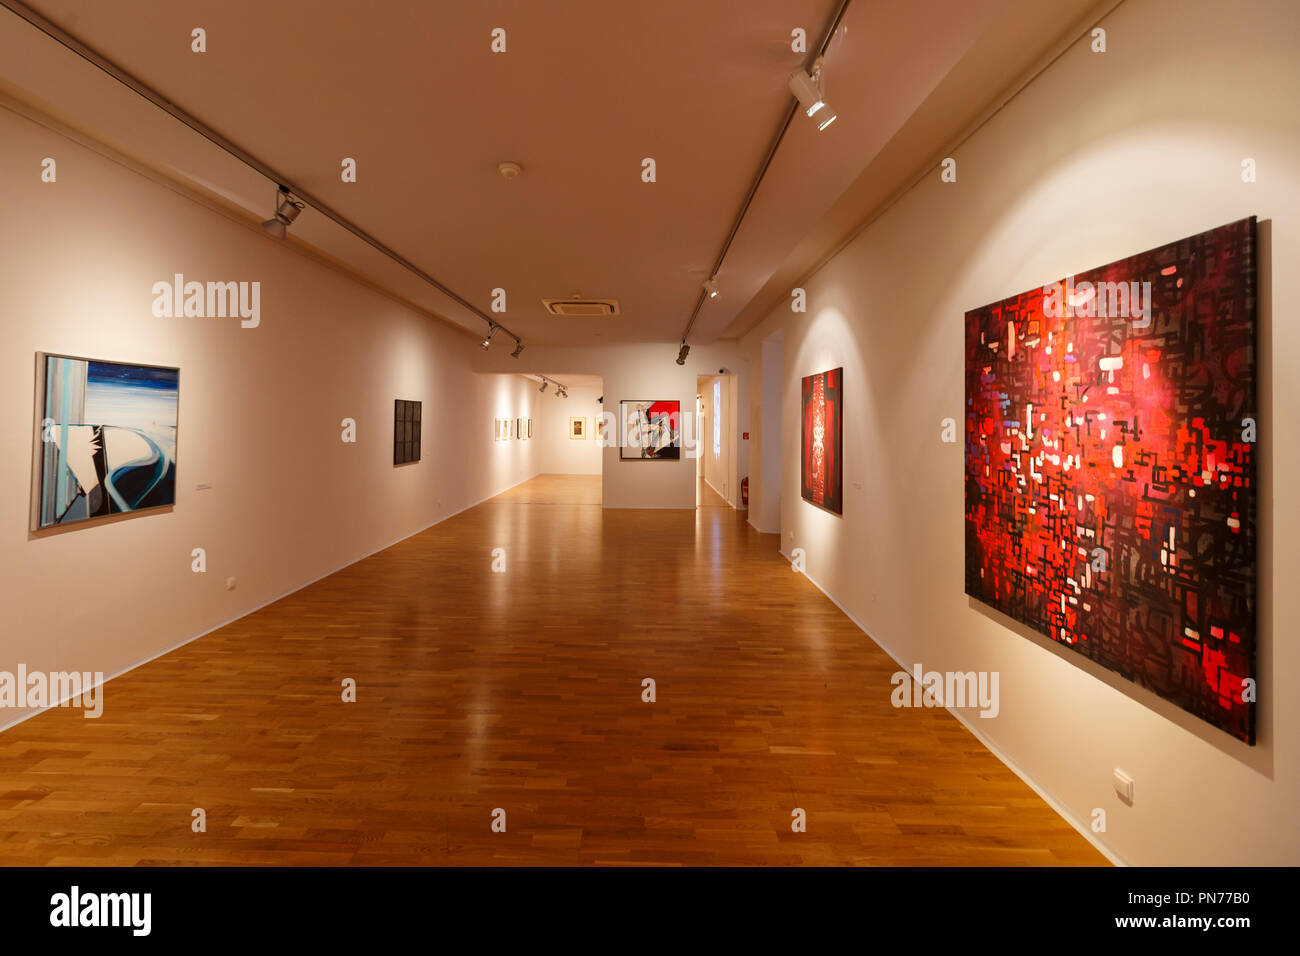 Kosice, Slovakia - August 12, 2018: Temporary exhibition of paintings in East Slovak Gallery in Kosice. Stock Photo